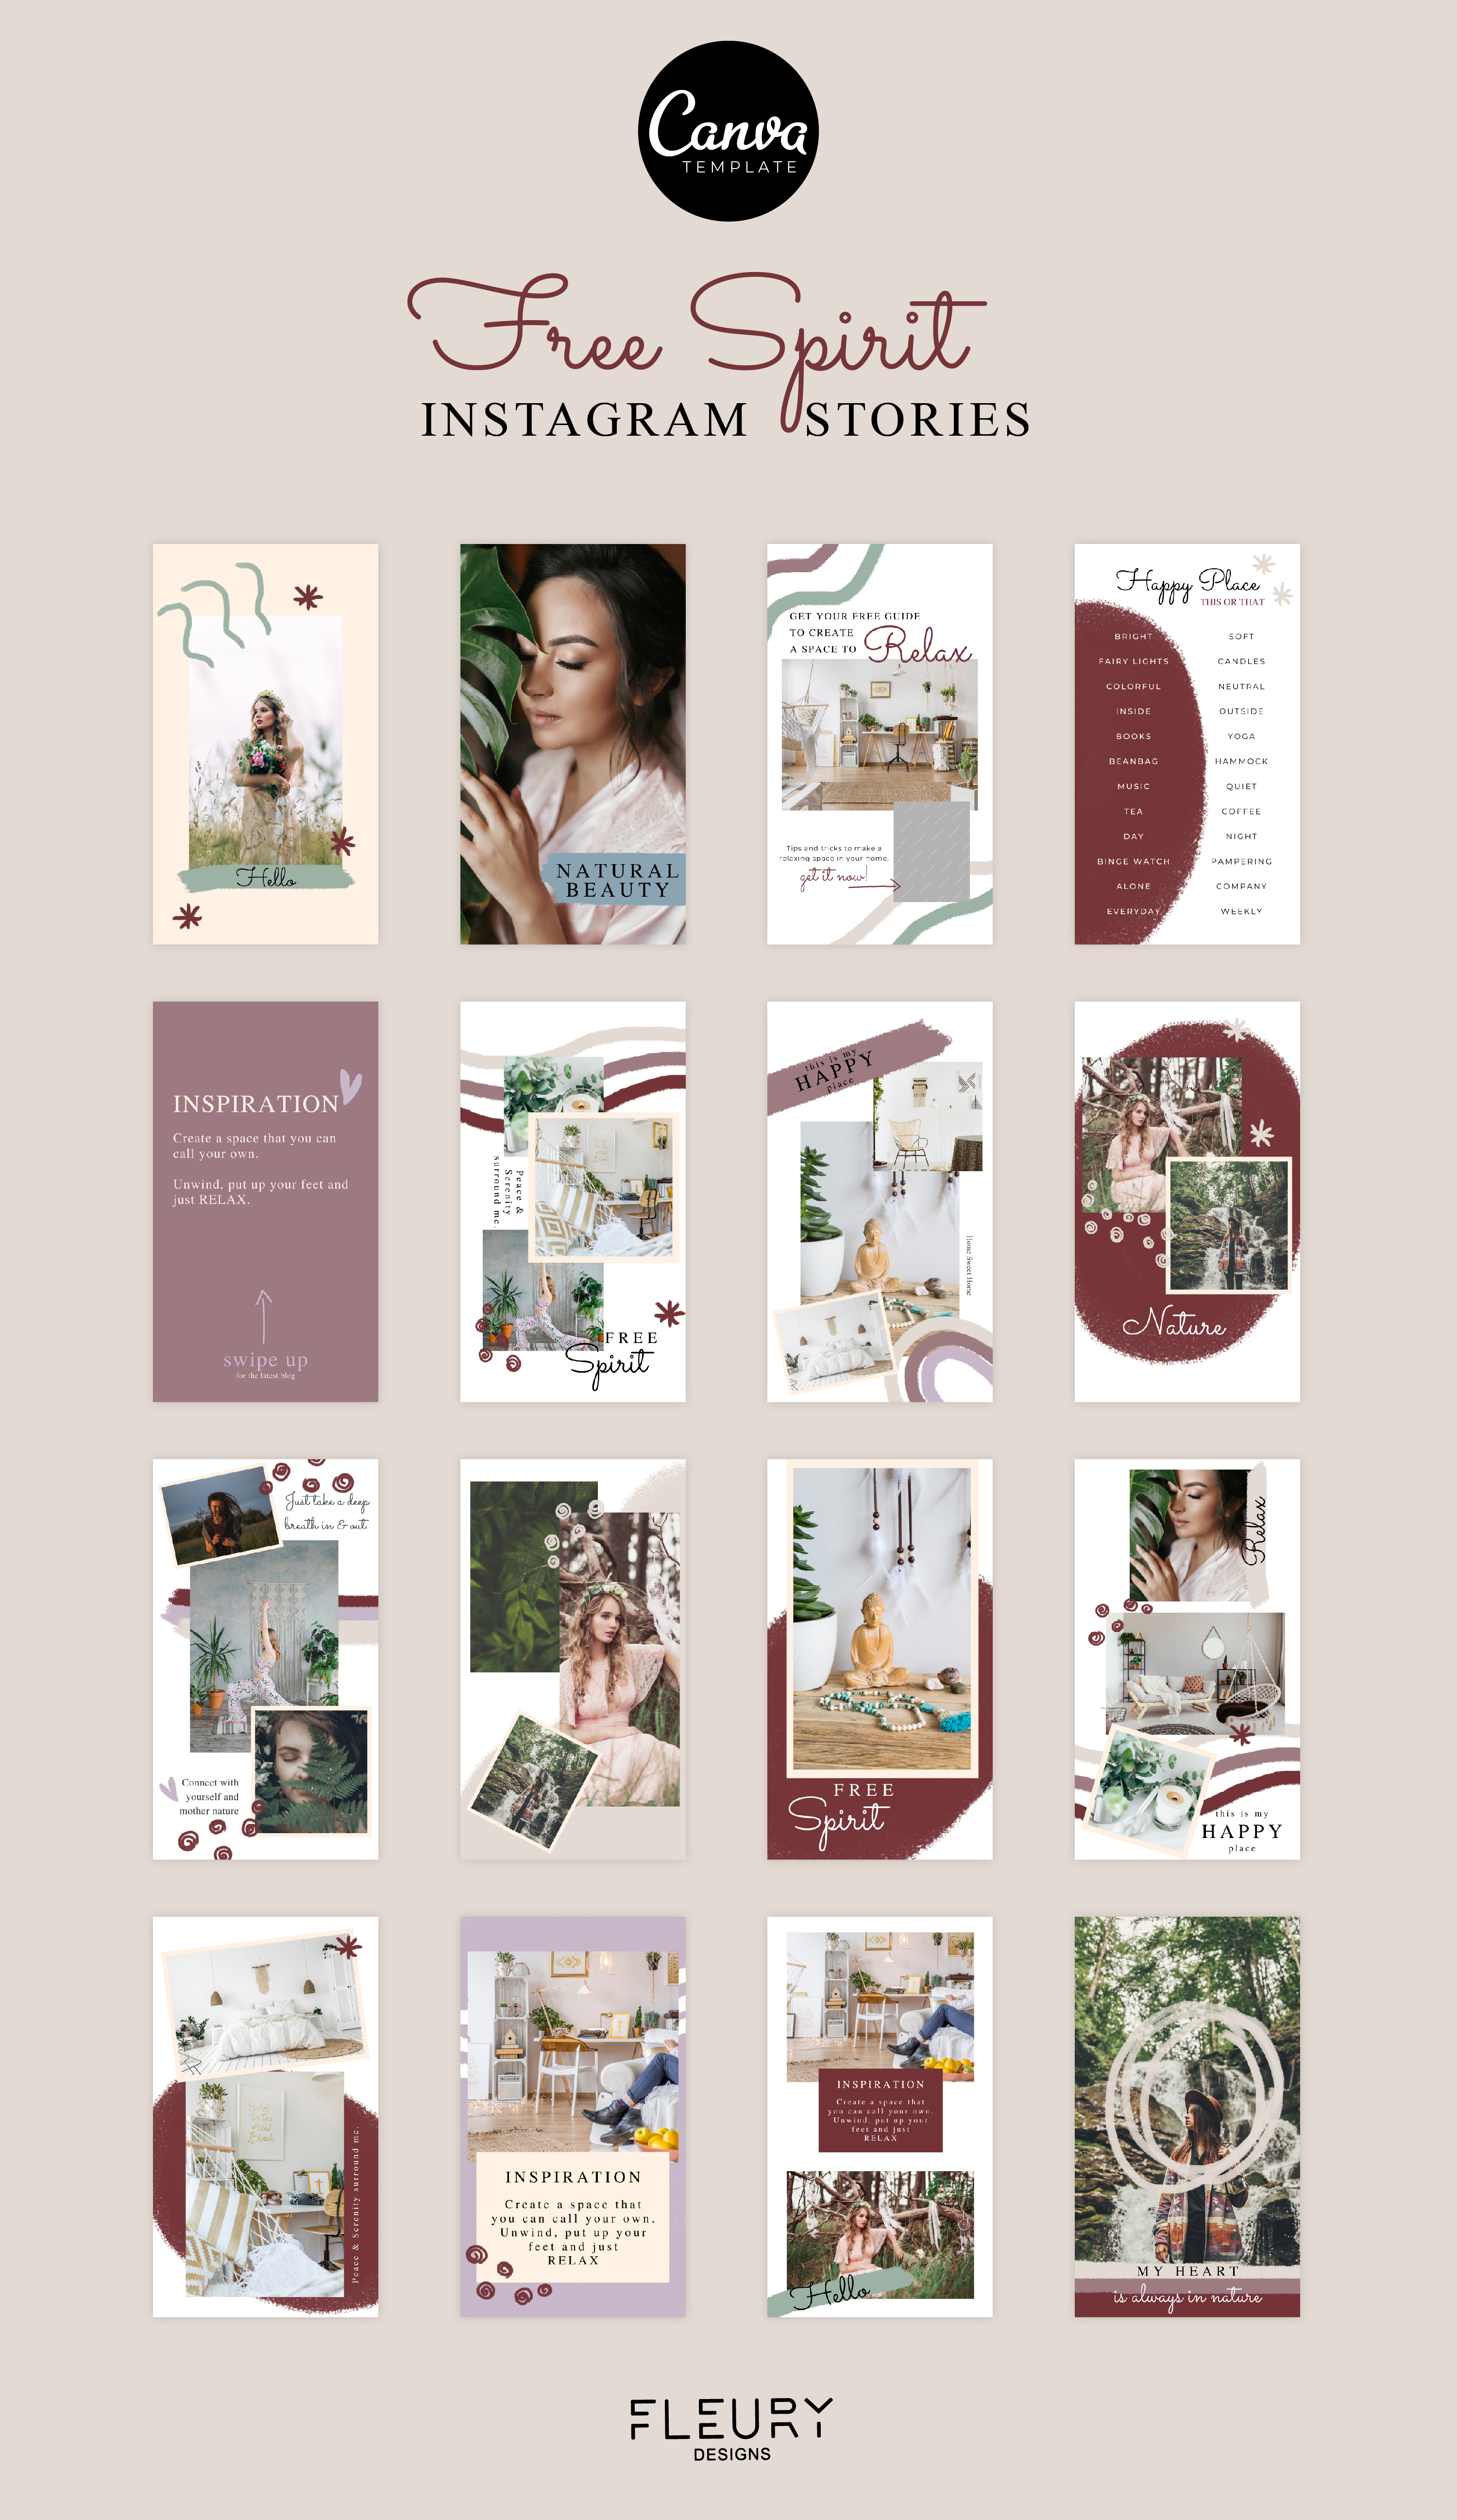 Instagram Story Canva Template - Free Spirit example image 4